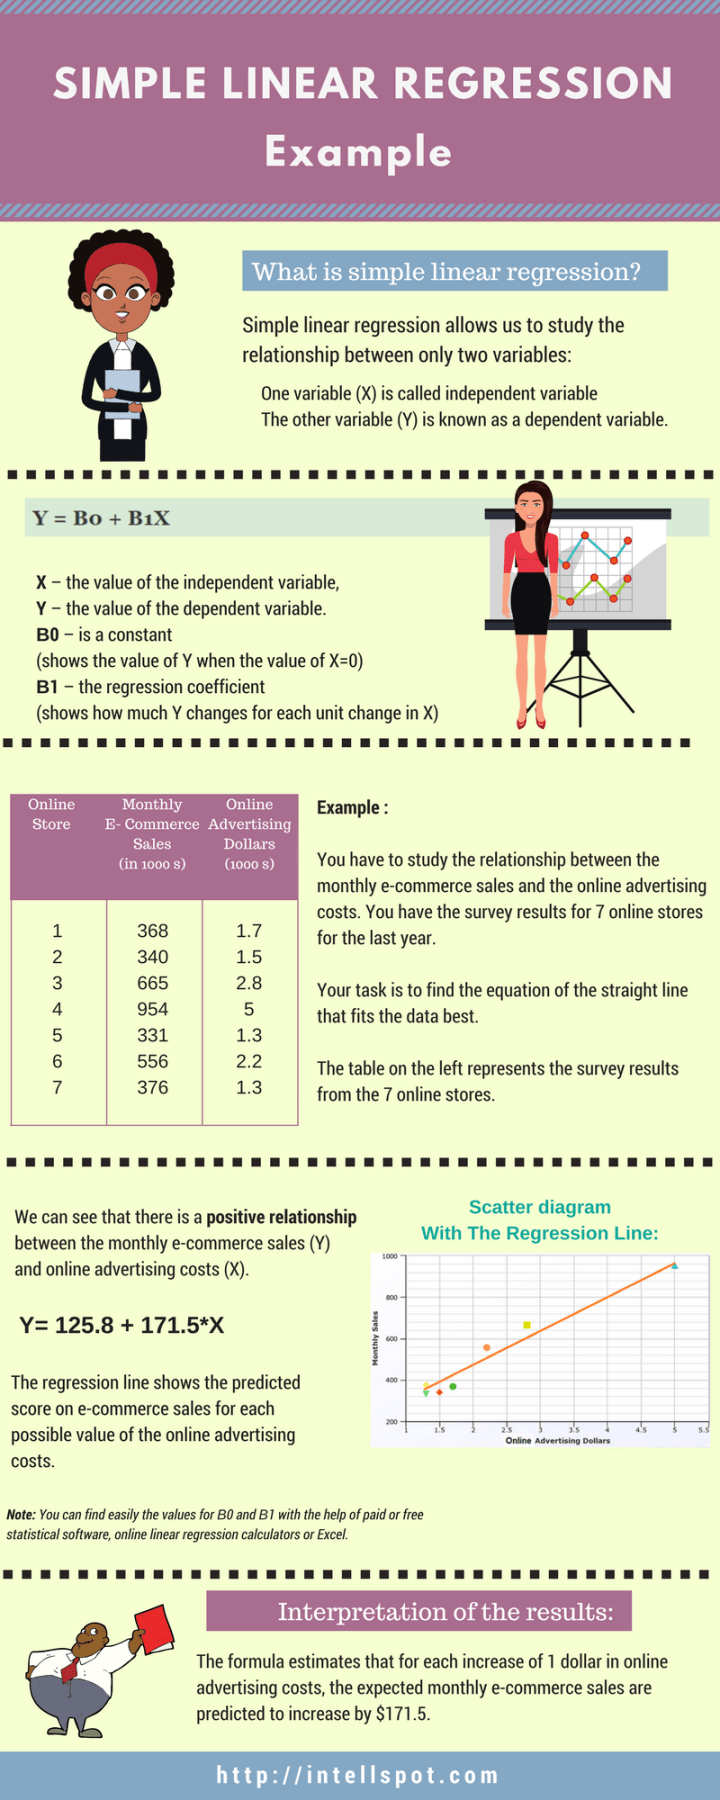 Simple Linear Regression Example Infographic